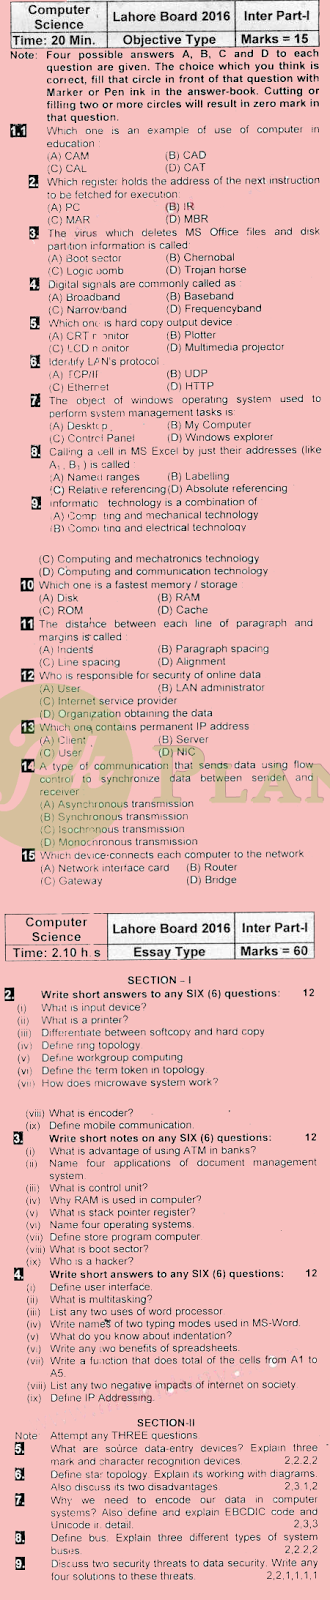 Past Papers of Computer Science Inter Part 1 Lahore Board 2016